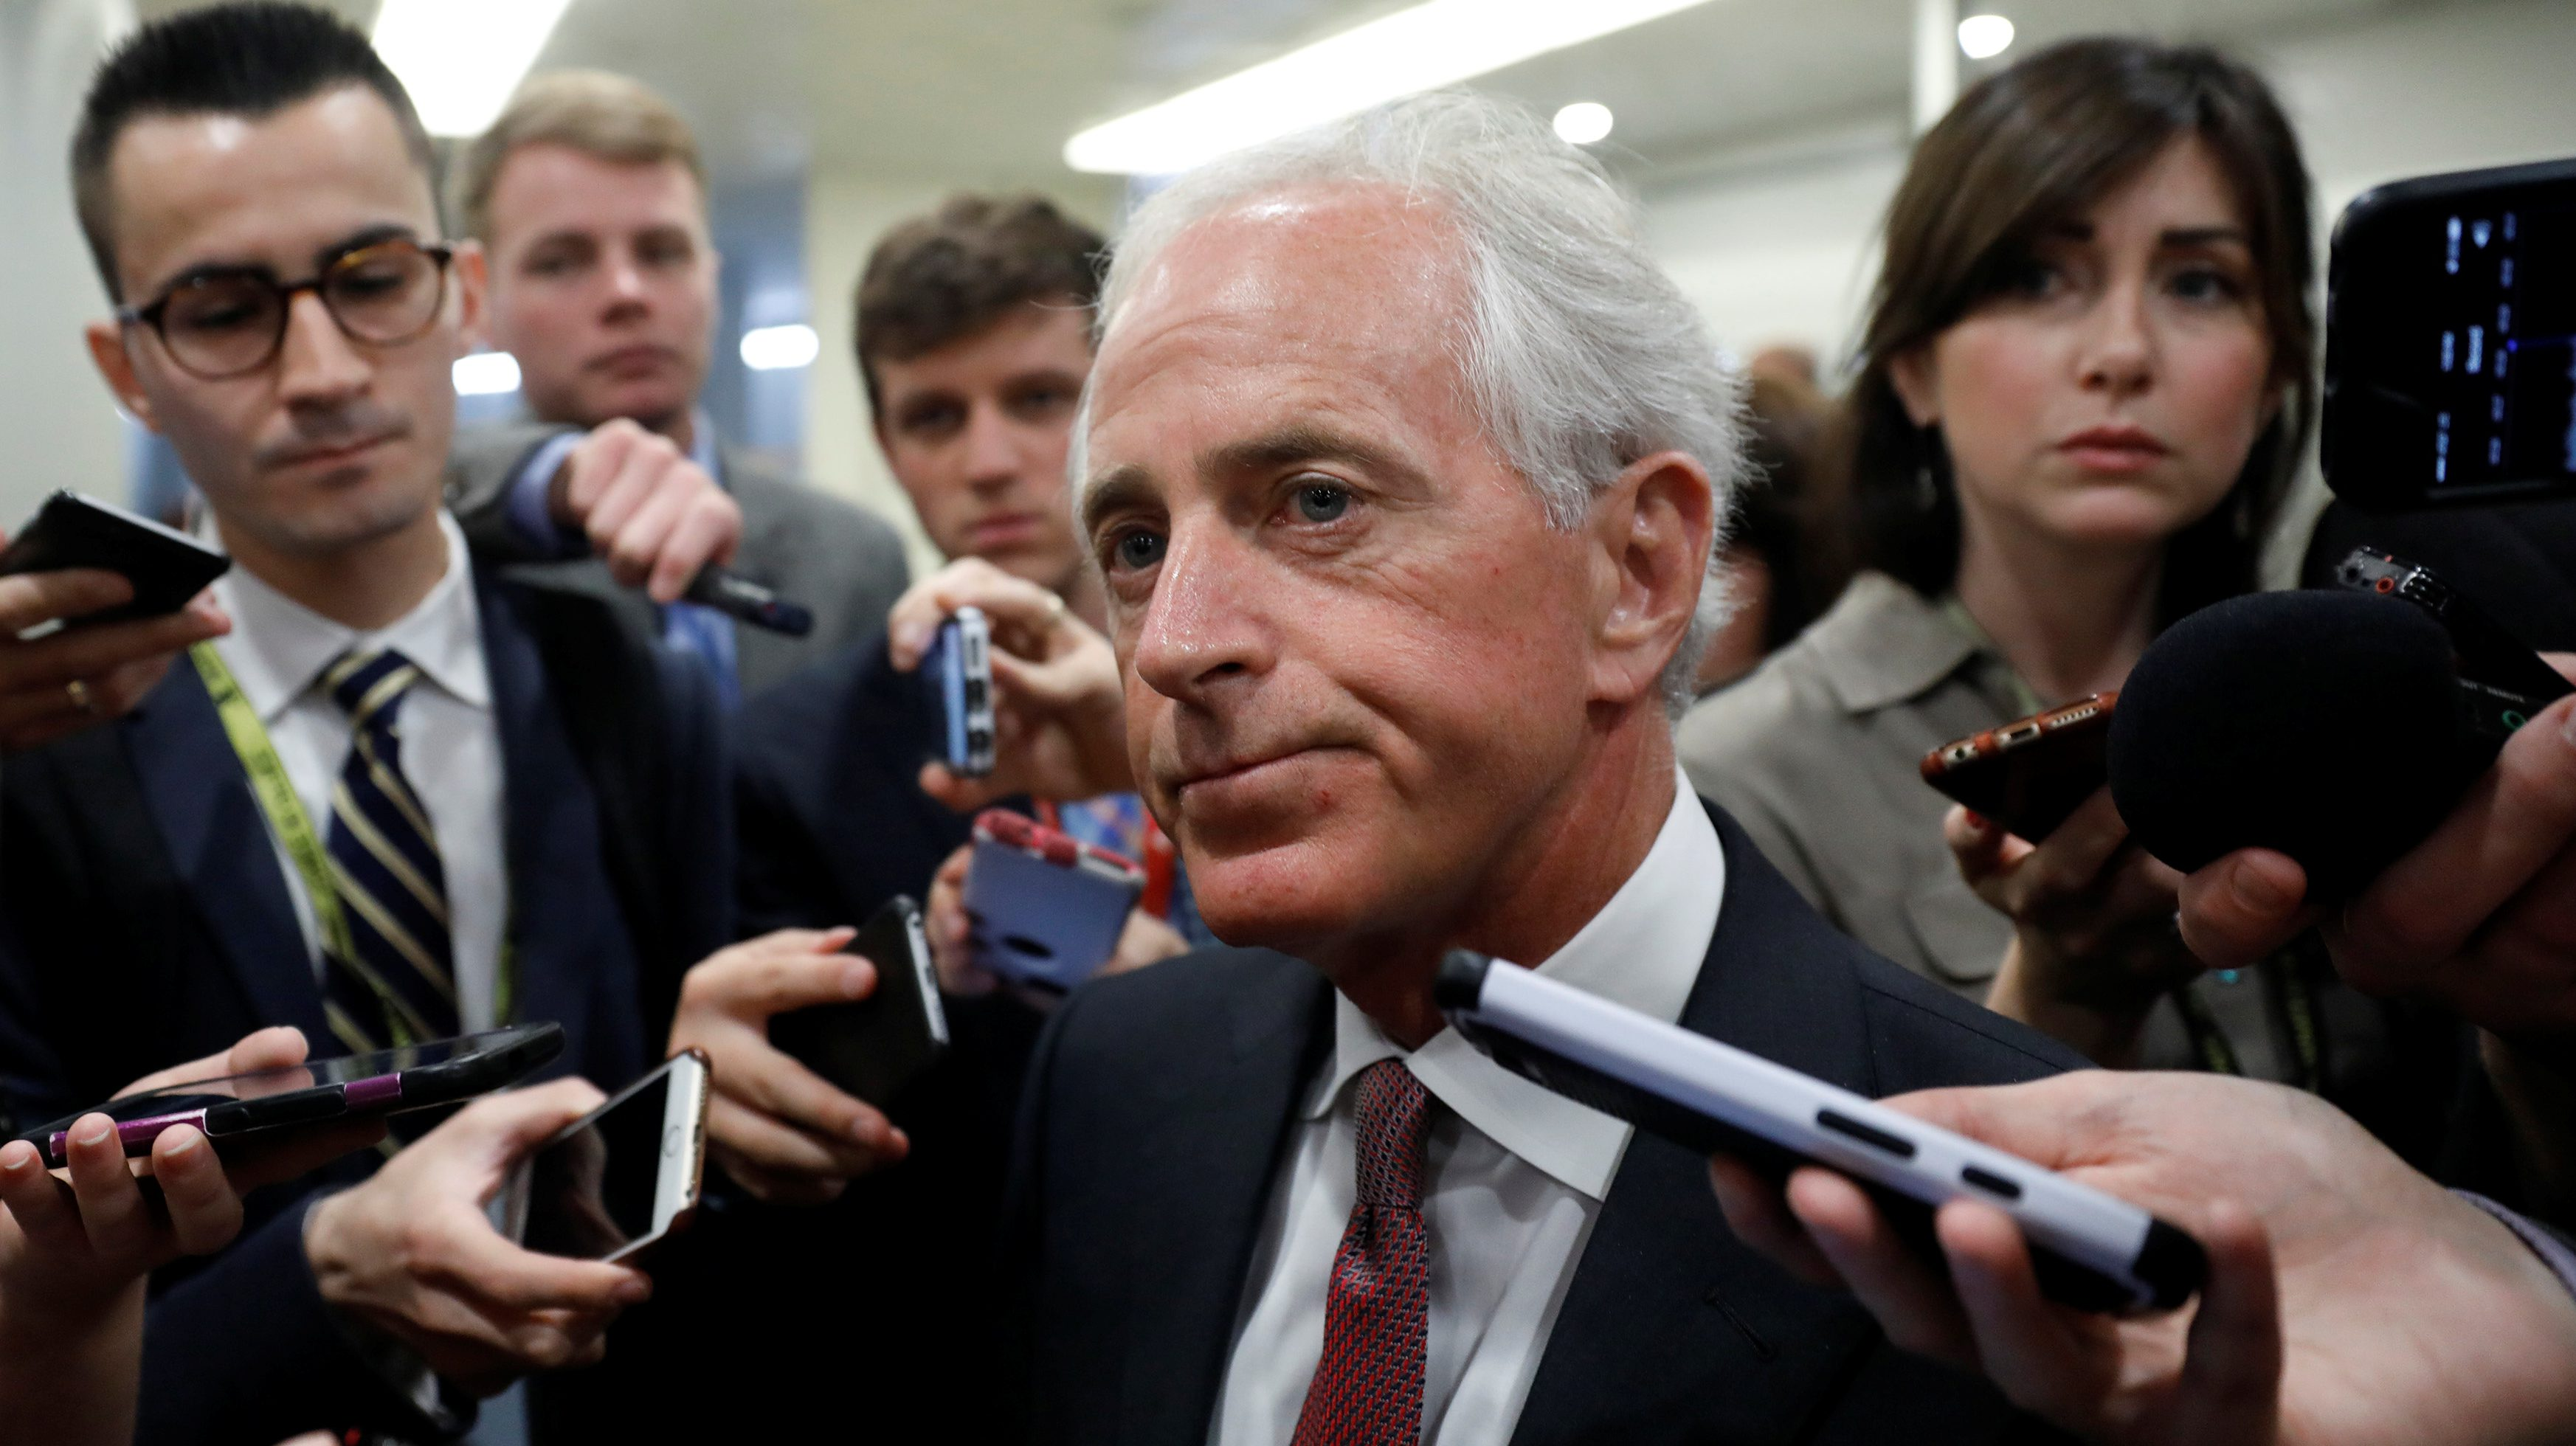 Sen. Bob Corker (R-TN) speaks to reporters about recent revelations of President Donald Trump sharing classified information with Russian Officials on Capitol Hill in Washington, D.C., U.S. May 16, 2017.  REUTERS/Aaron P. Bernstein - RTX363O6